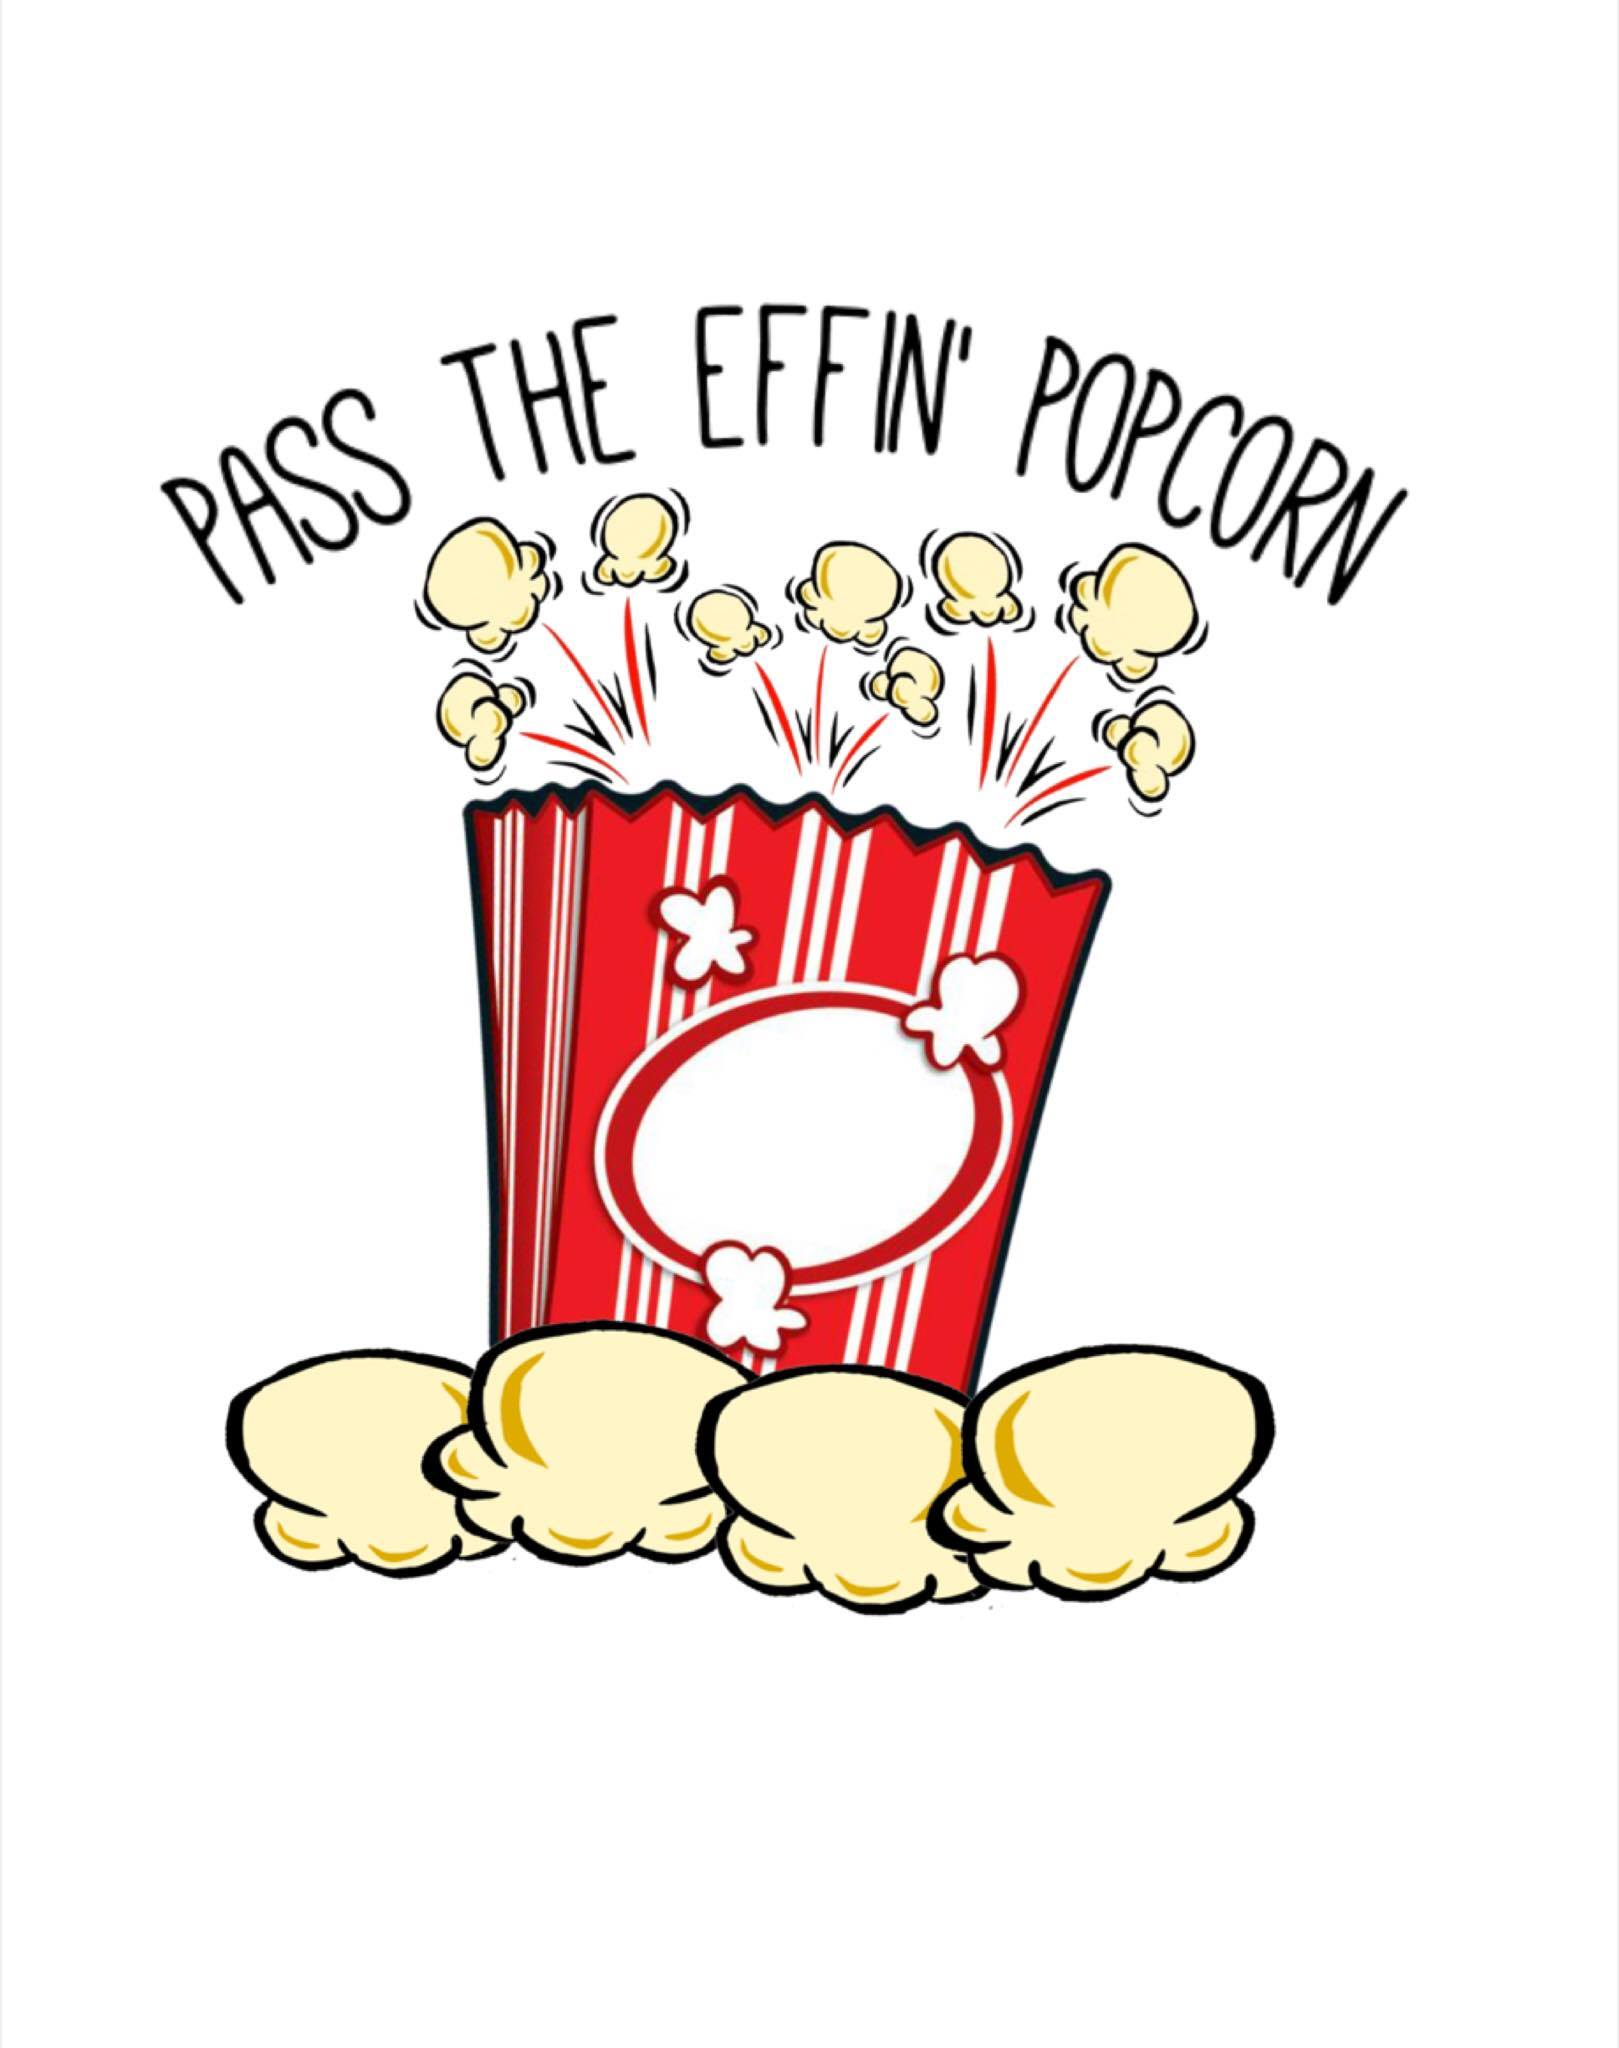 Popcorn Drawing at GetDrawings.com | Free for personal use Popcorn ...